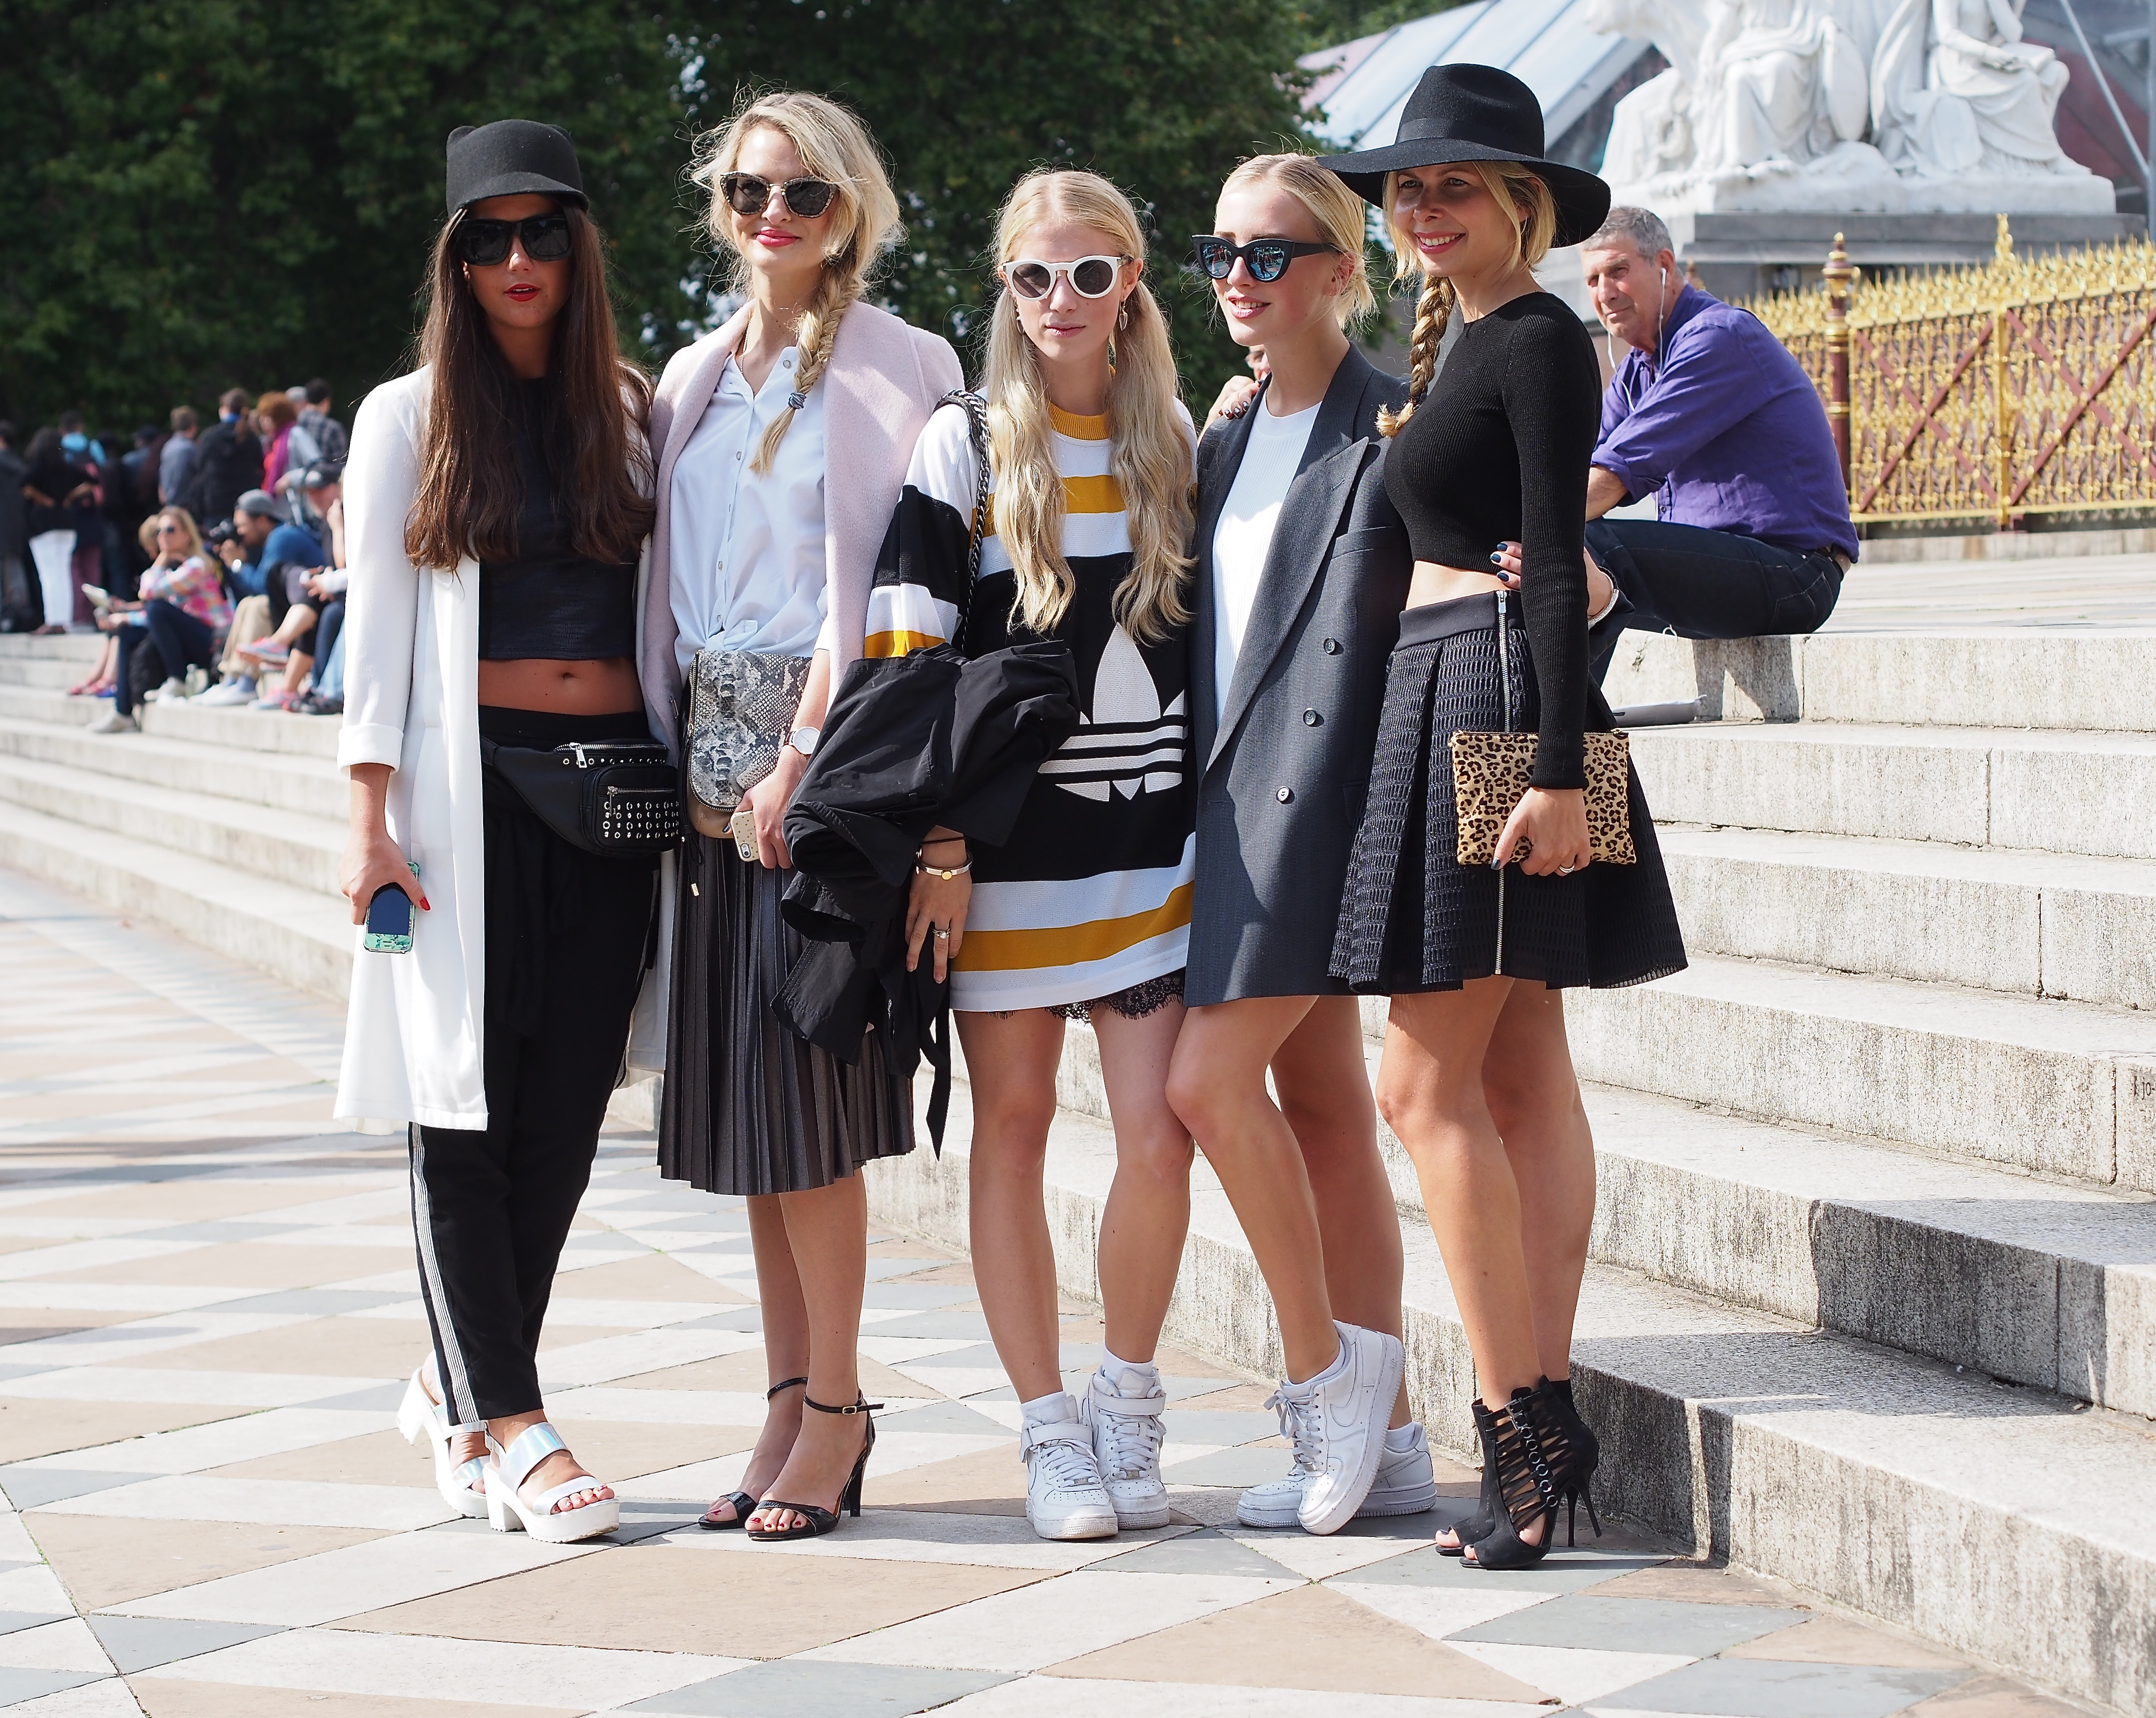 together with Chrissa Bella,Laura Tonder, Sarah Mikaela and Arianna Trapani after the Burberry show at London Fashionweek""